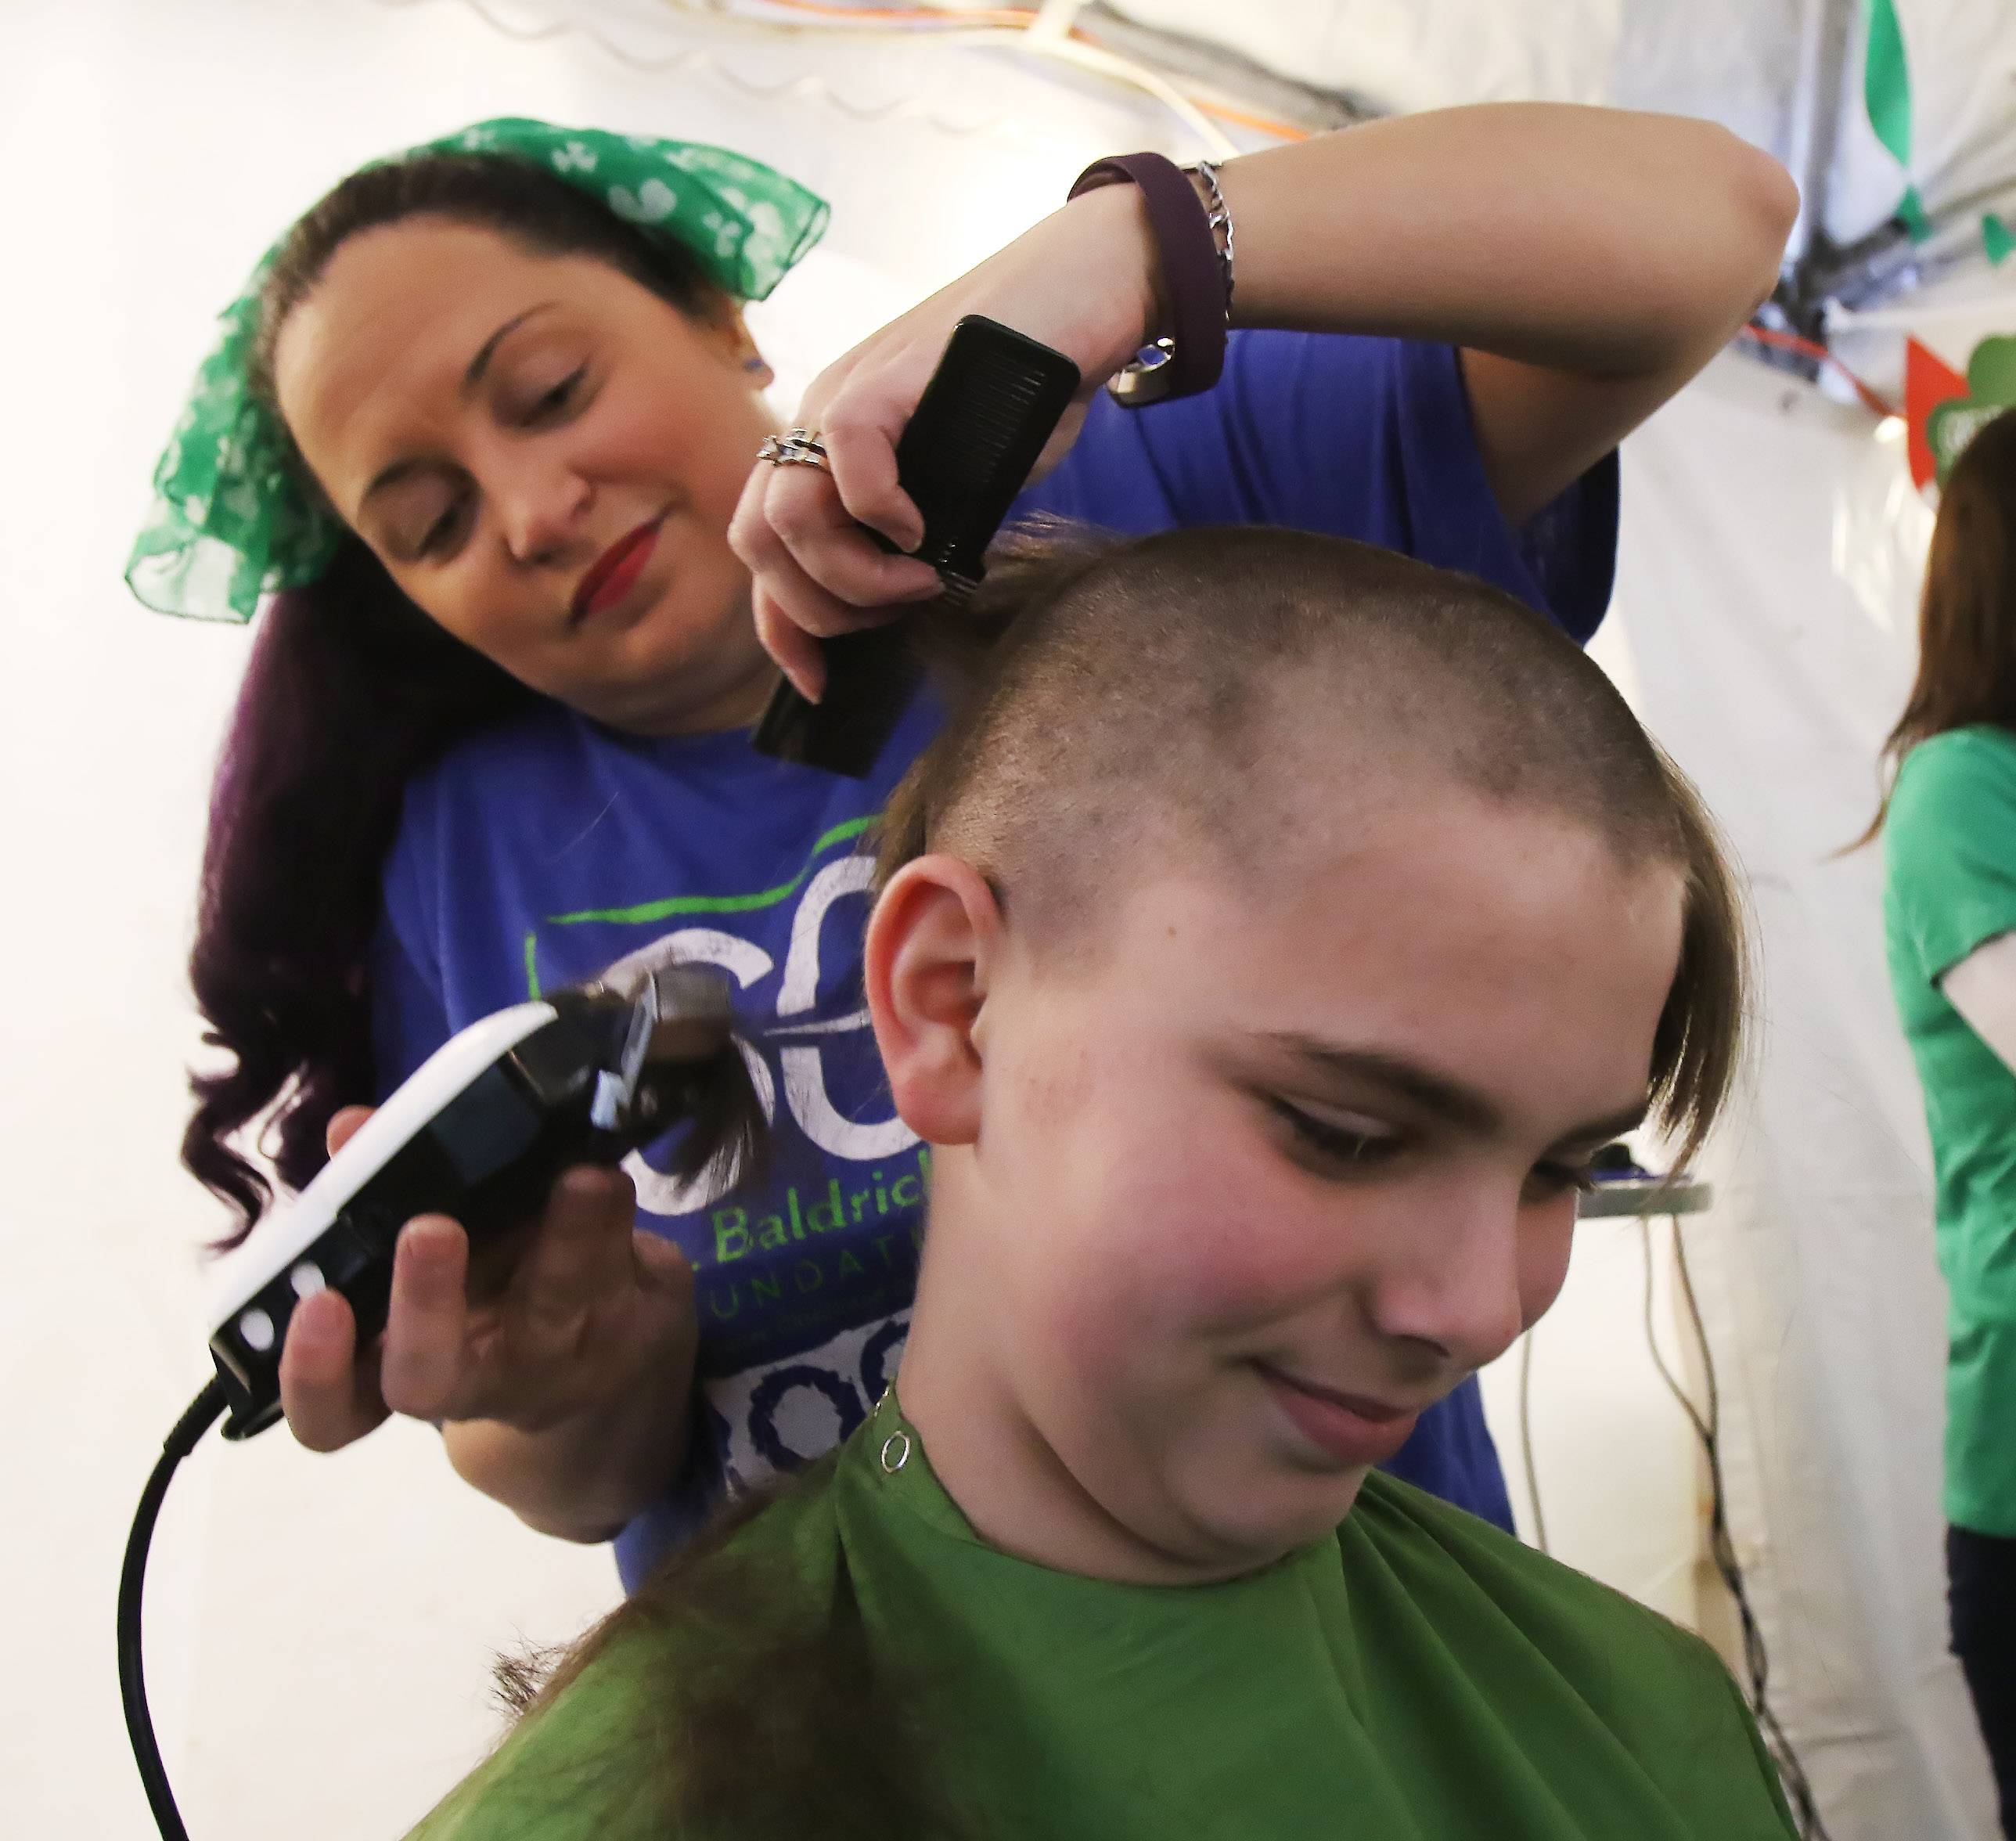 Thirteen-year-old Ryan Siegel of Lake Zurich gets his head shaved by Shelly Healy of Volo during the St. Baldrick's shaving event Sunday in Wauconda to help find a cure for children's cancer. More than 75 people were expected to have their heads shaved at the charity event.